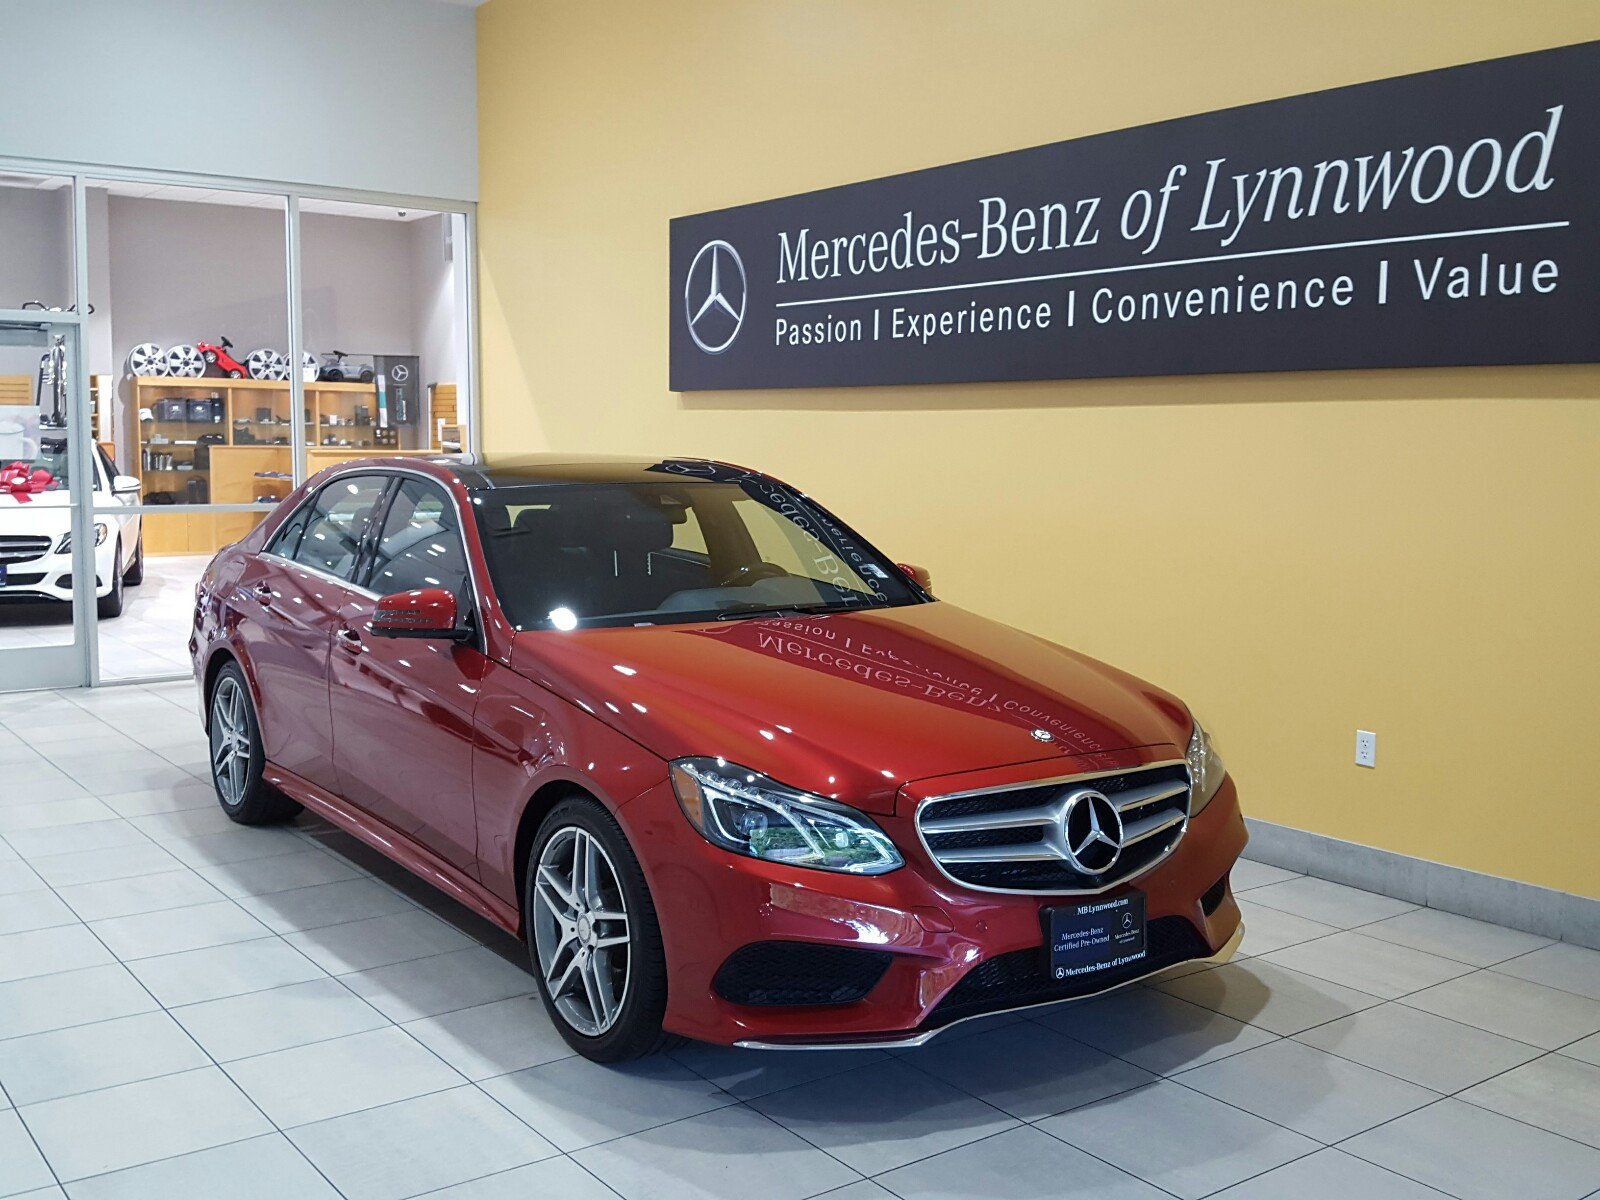 Certified pre owned 2014 mercedes benz e class e 550 sport for Mercedes benz cpo special offers